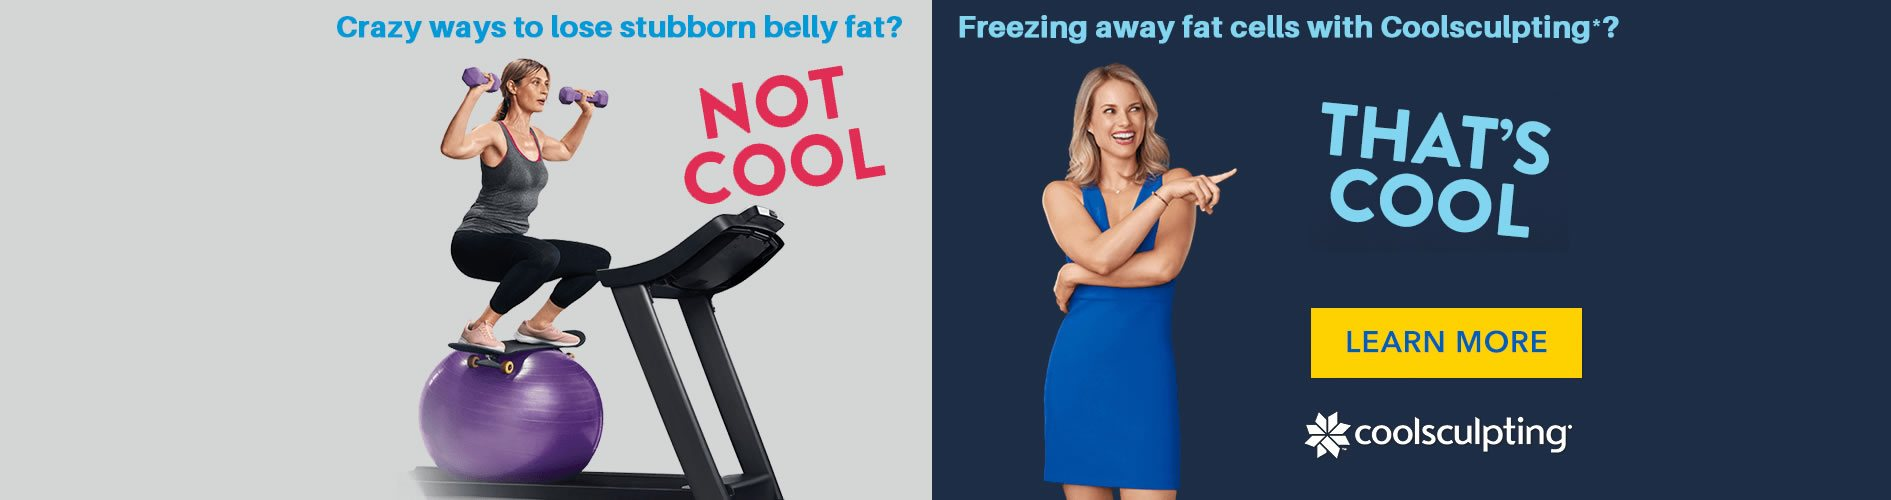 reezing away fat cells with Coolsculpting Slider